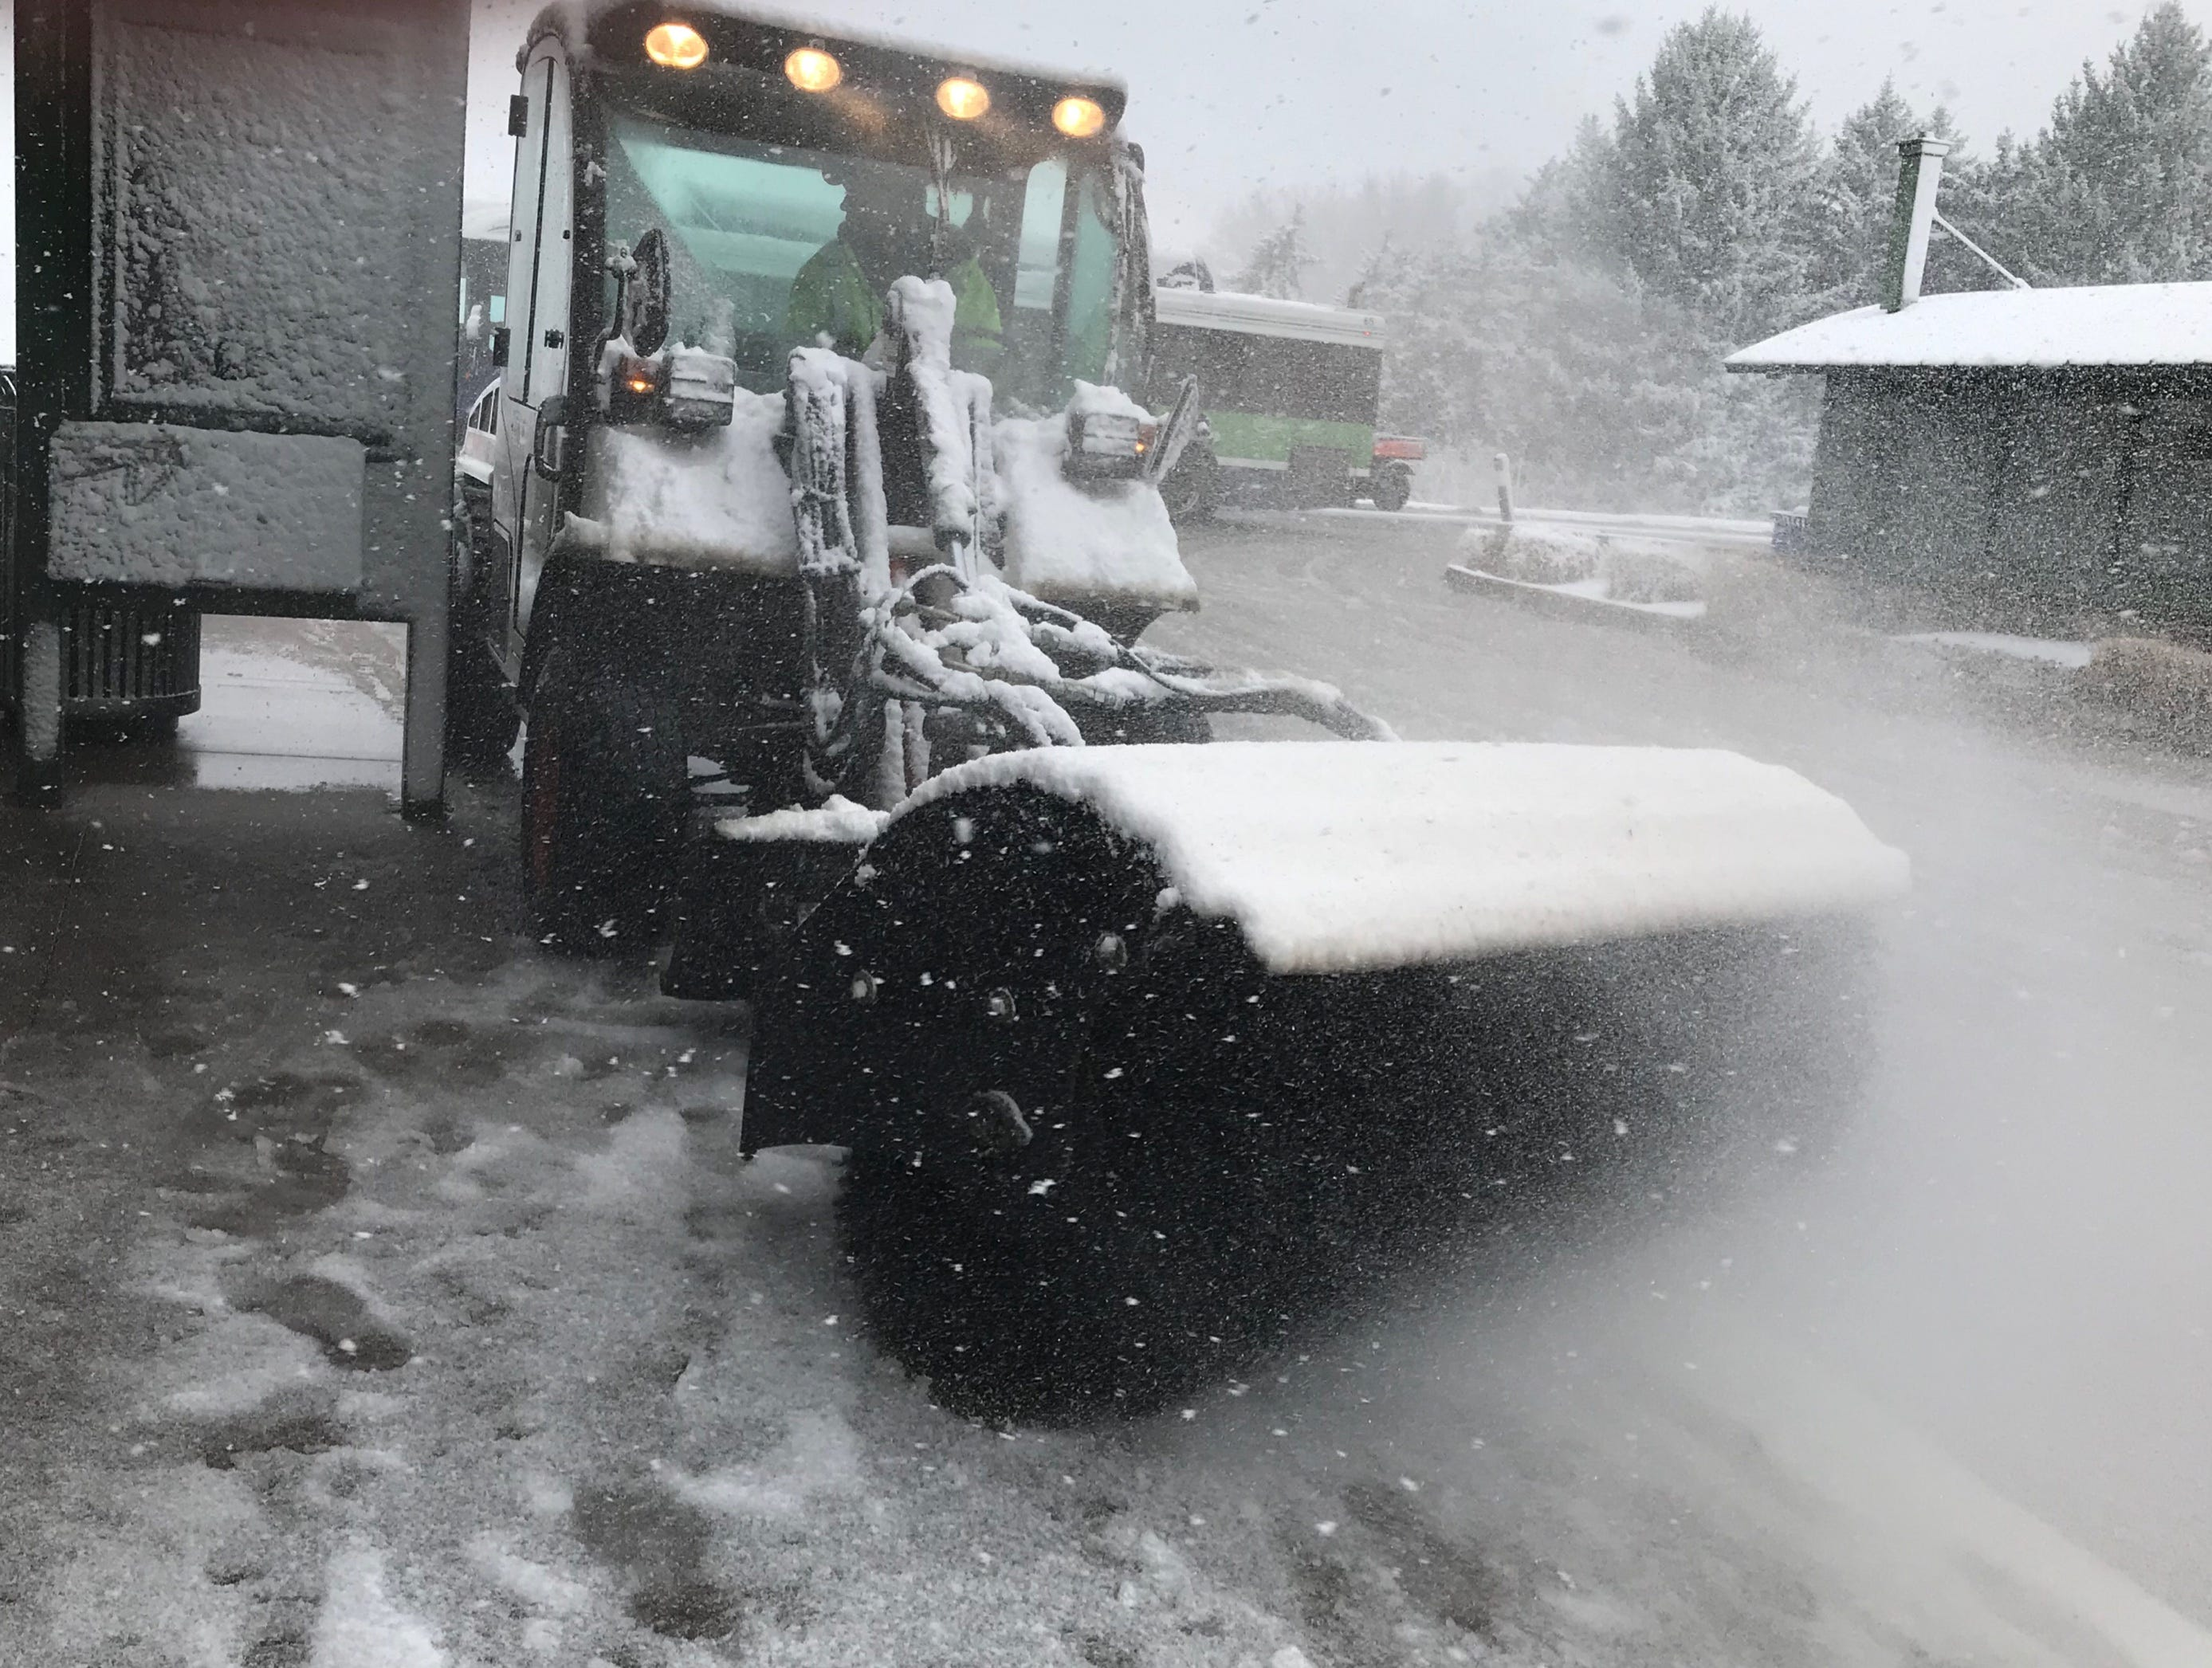 At Colorado State University: Scenes from the April 10, 2019 snowstorm in Fort Collins and Northern Colorado